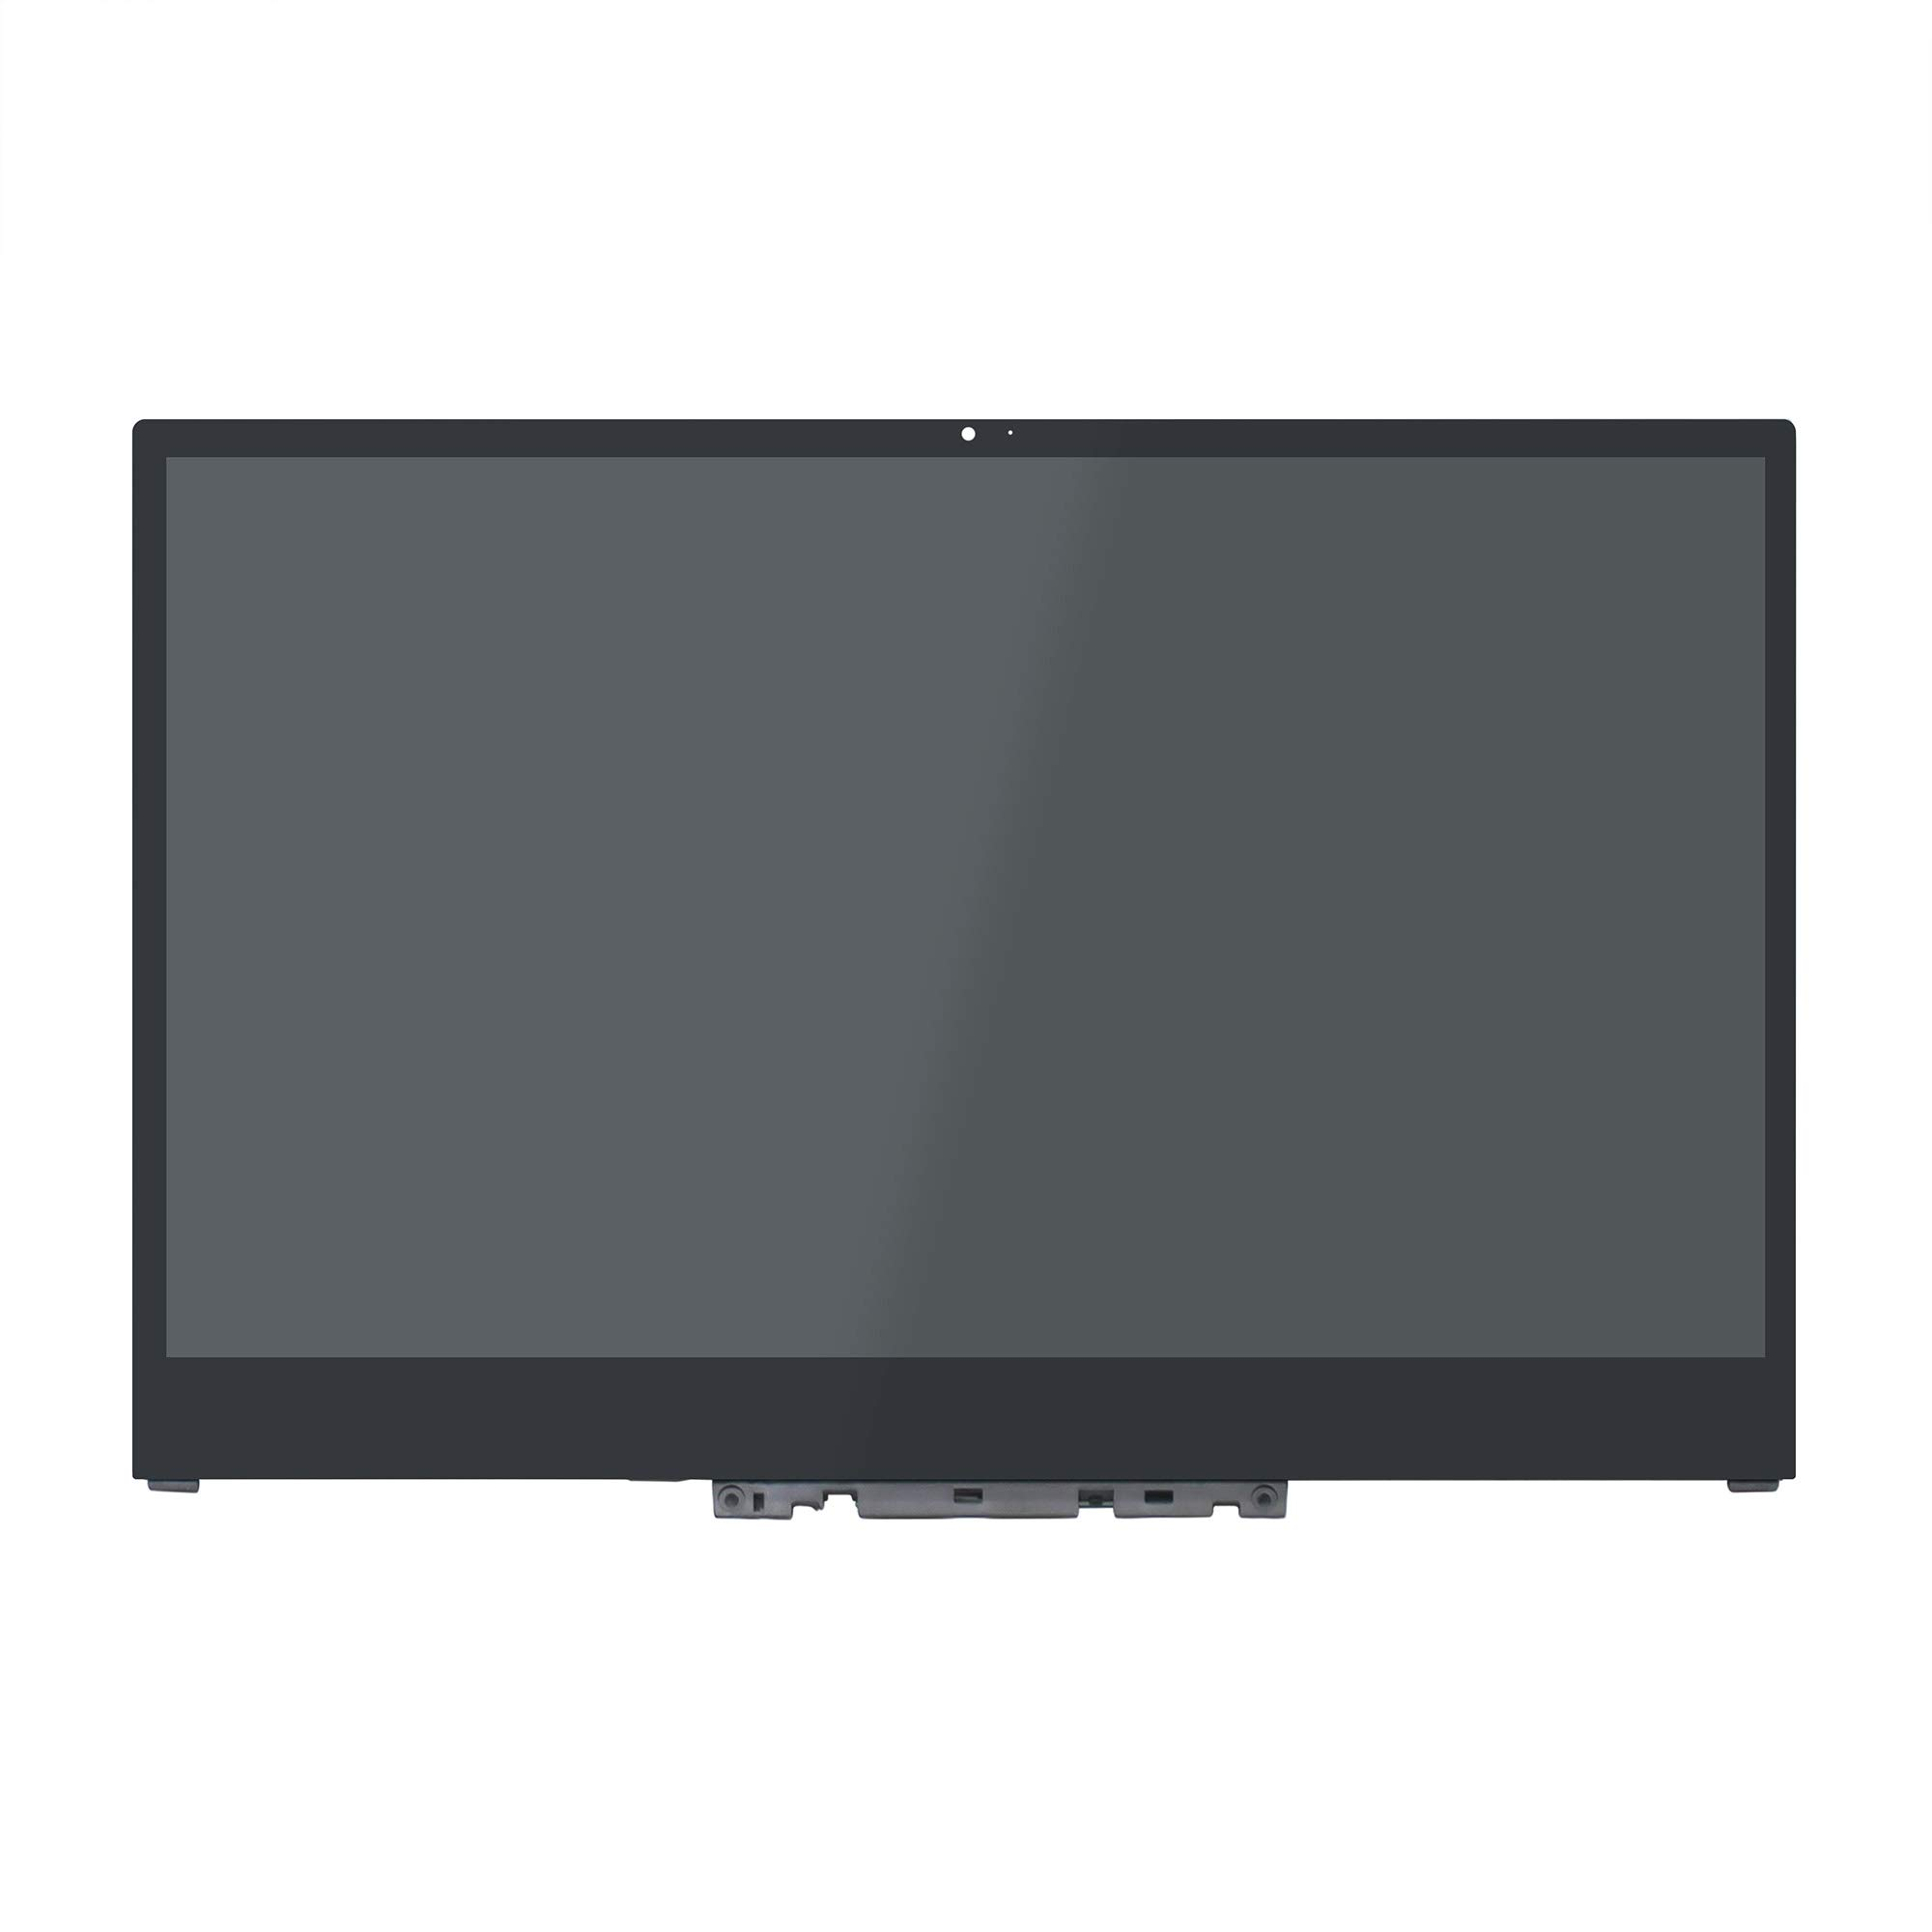 LCDOLED Compatible 15.6 inch UHD 4K 3840x2160 IPS NV156QUM-N51 LCD Display Touch Screen Digitizer Assembly + Bezel + Board Replacement for Lenovo Yoga 720 720-15 720-15IKB 80X7 80X7001VUS 80X7003VUS